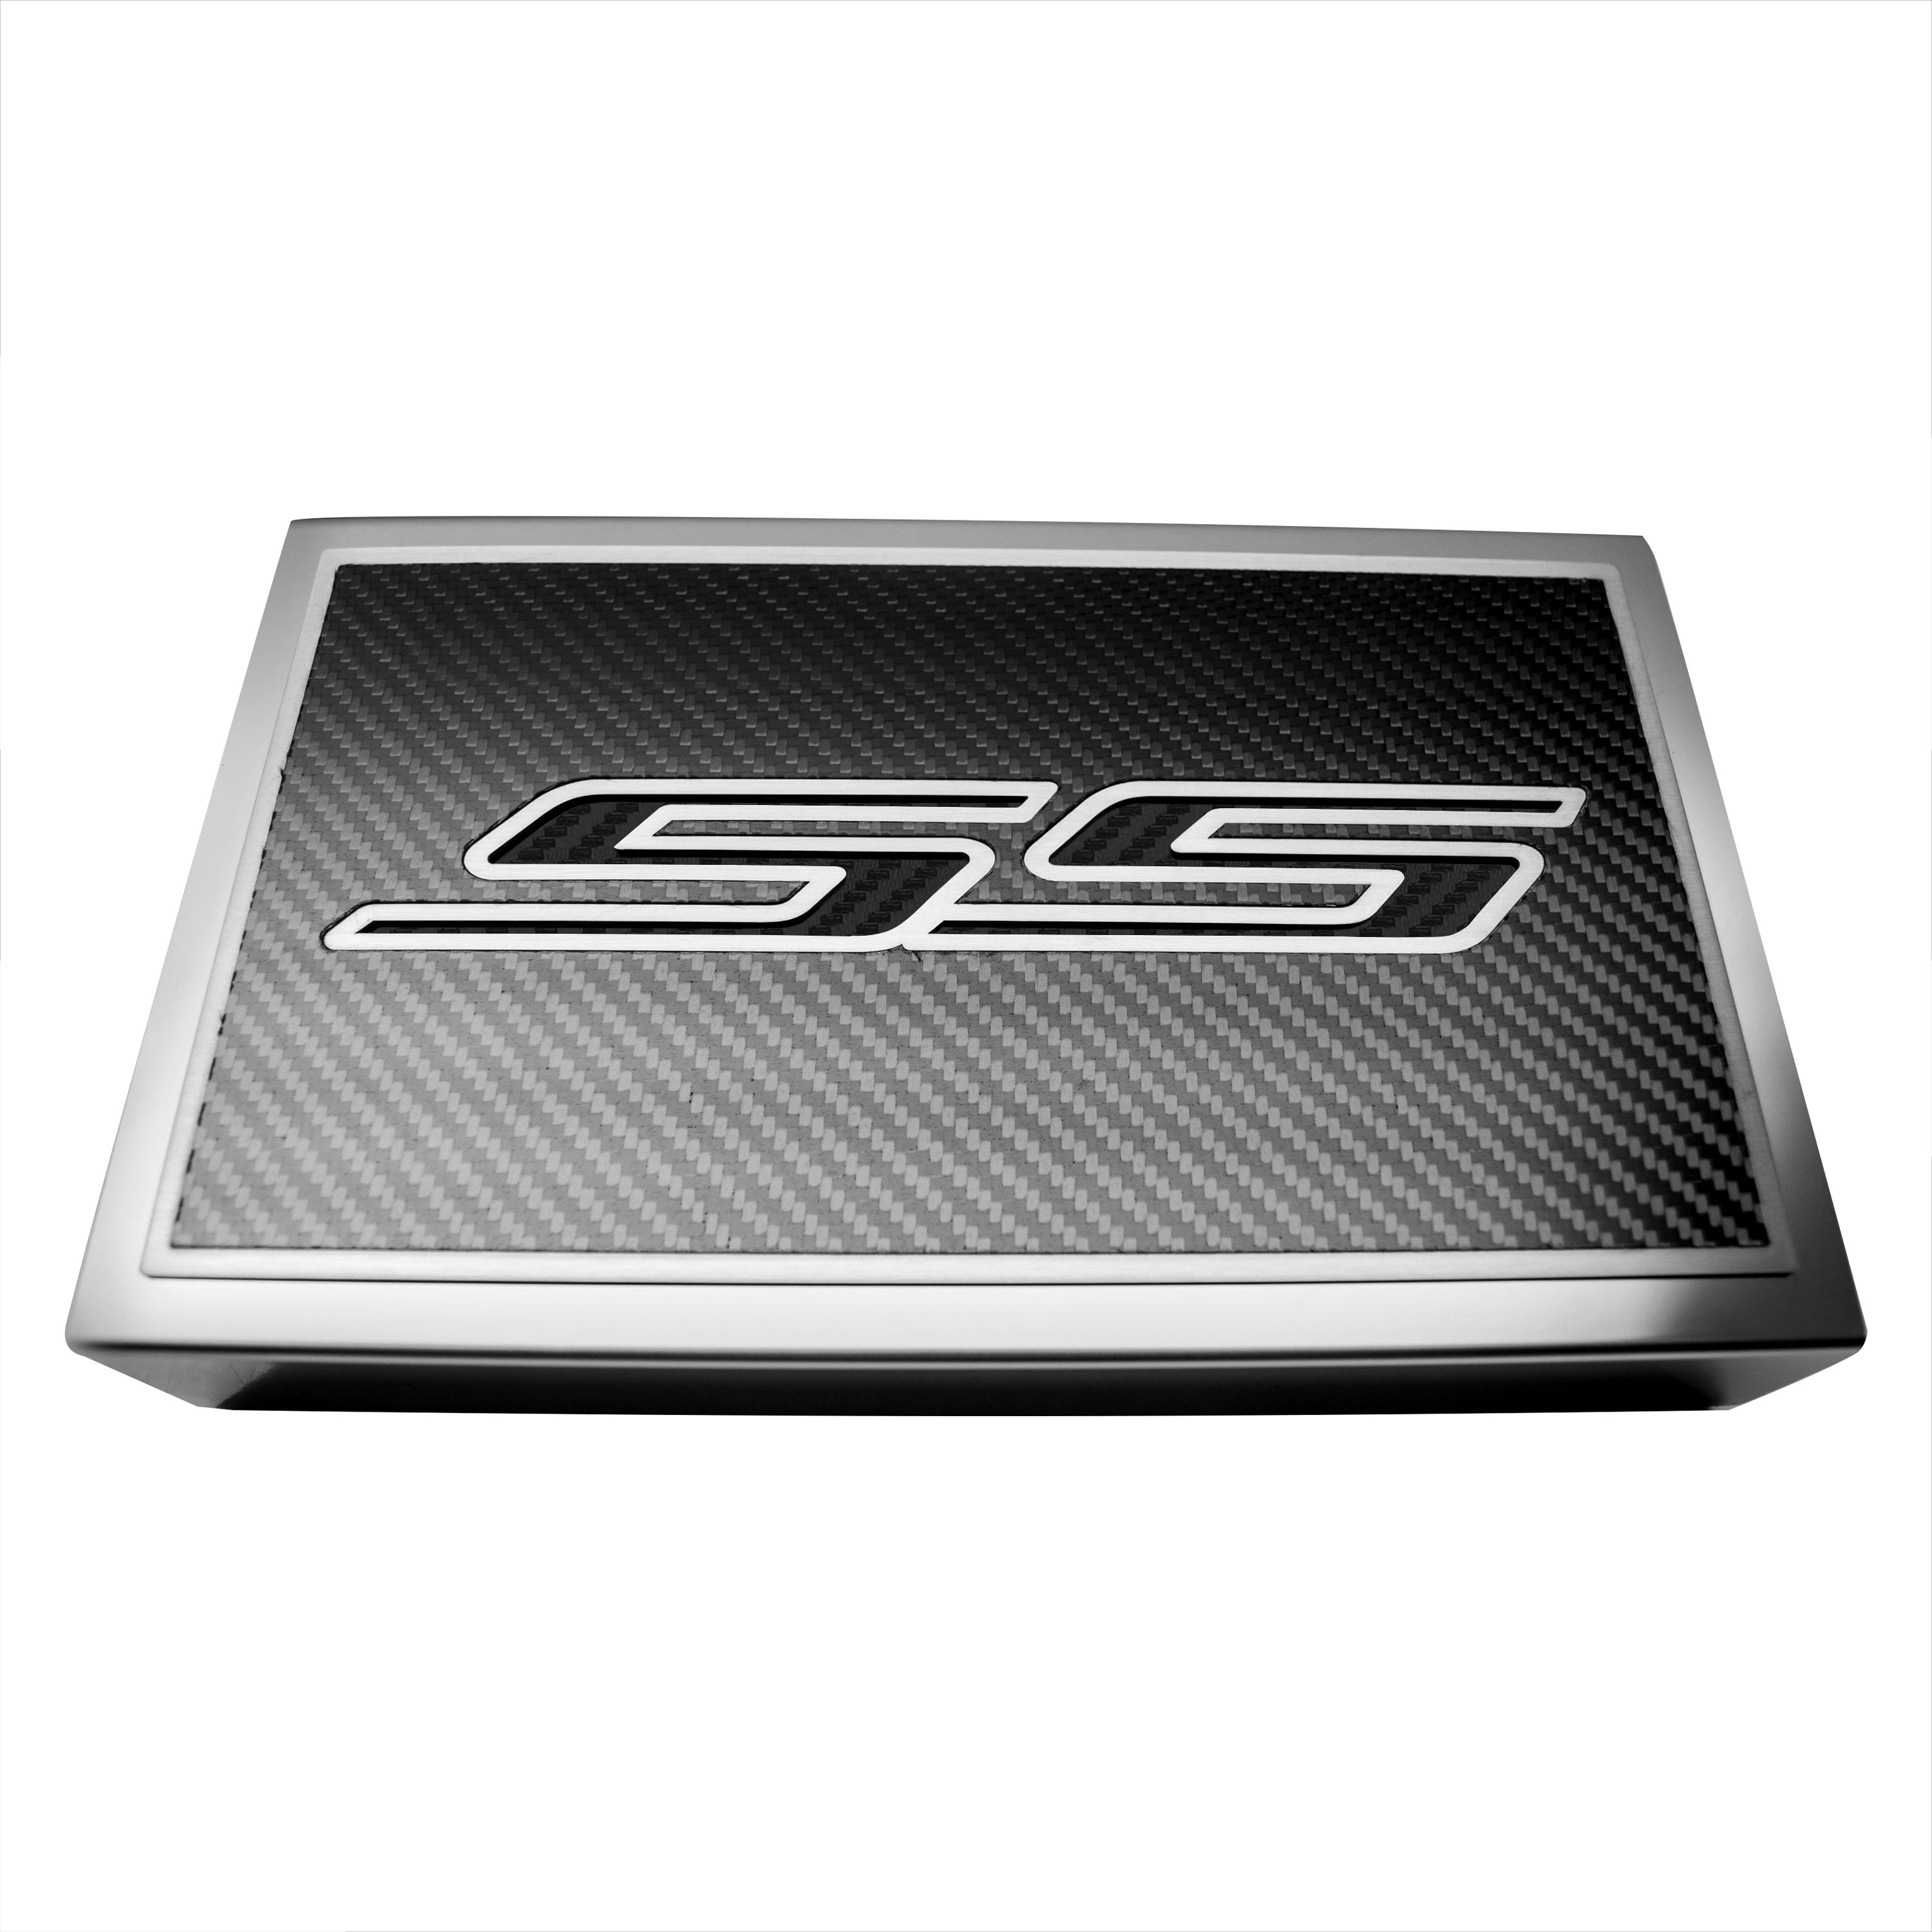 for chevy camaro 16-19 fuse box plate acc carbon fiber ... camaro fuse box cover plate roush f150 fuse box cover #5